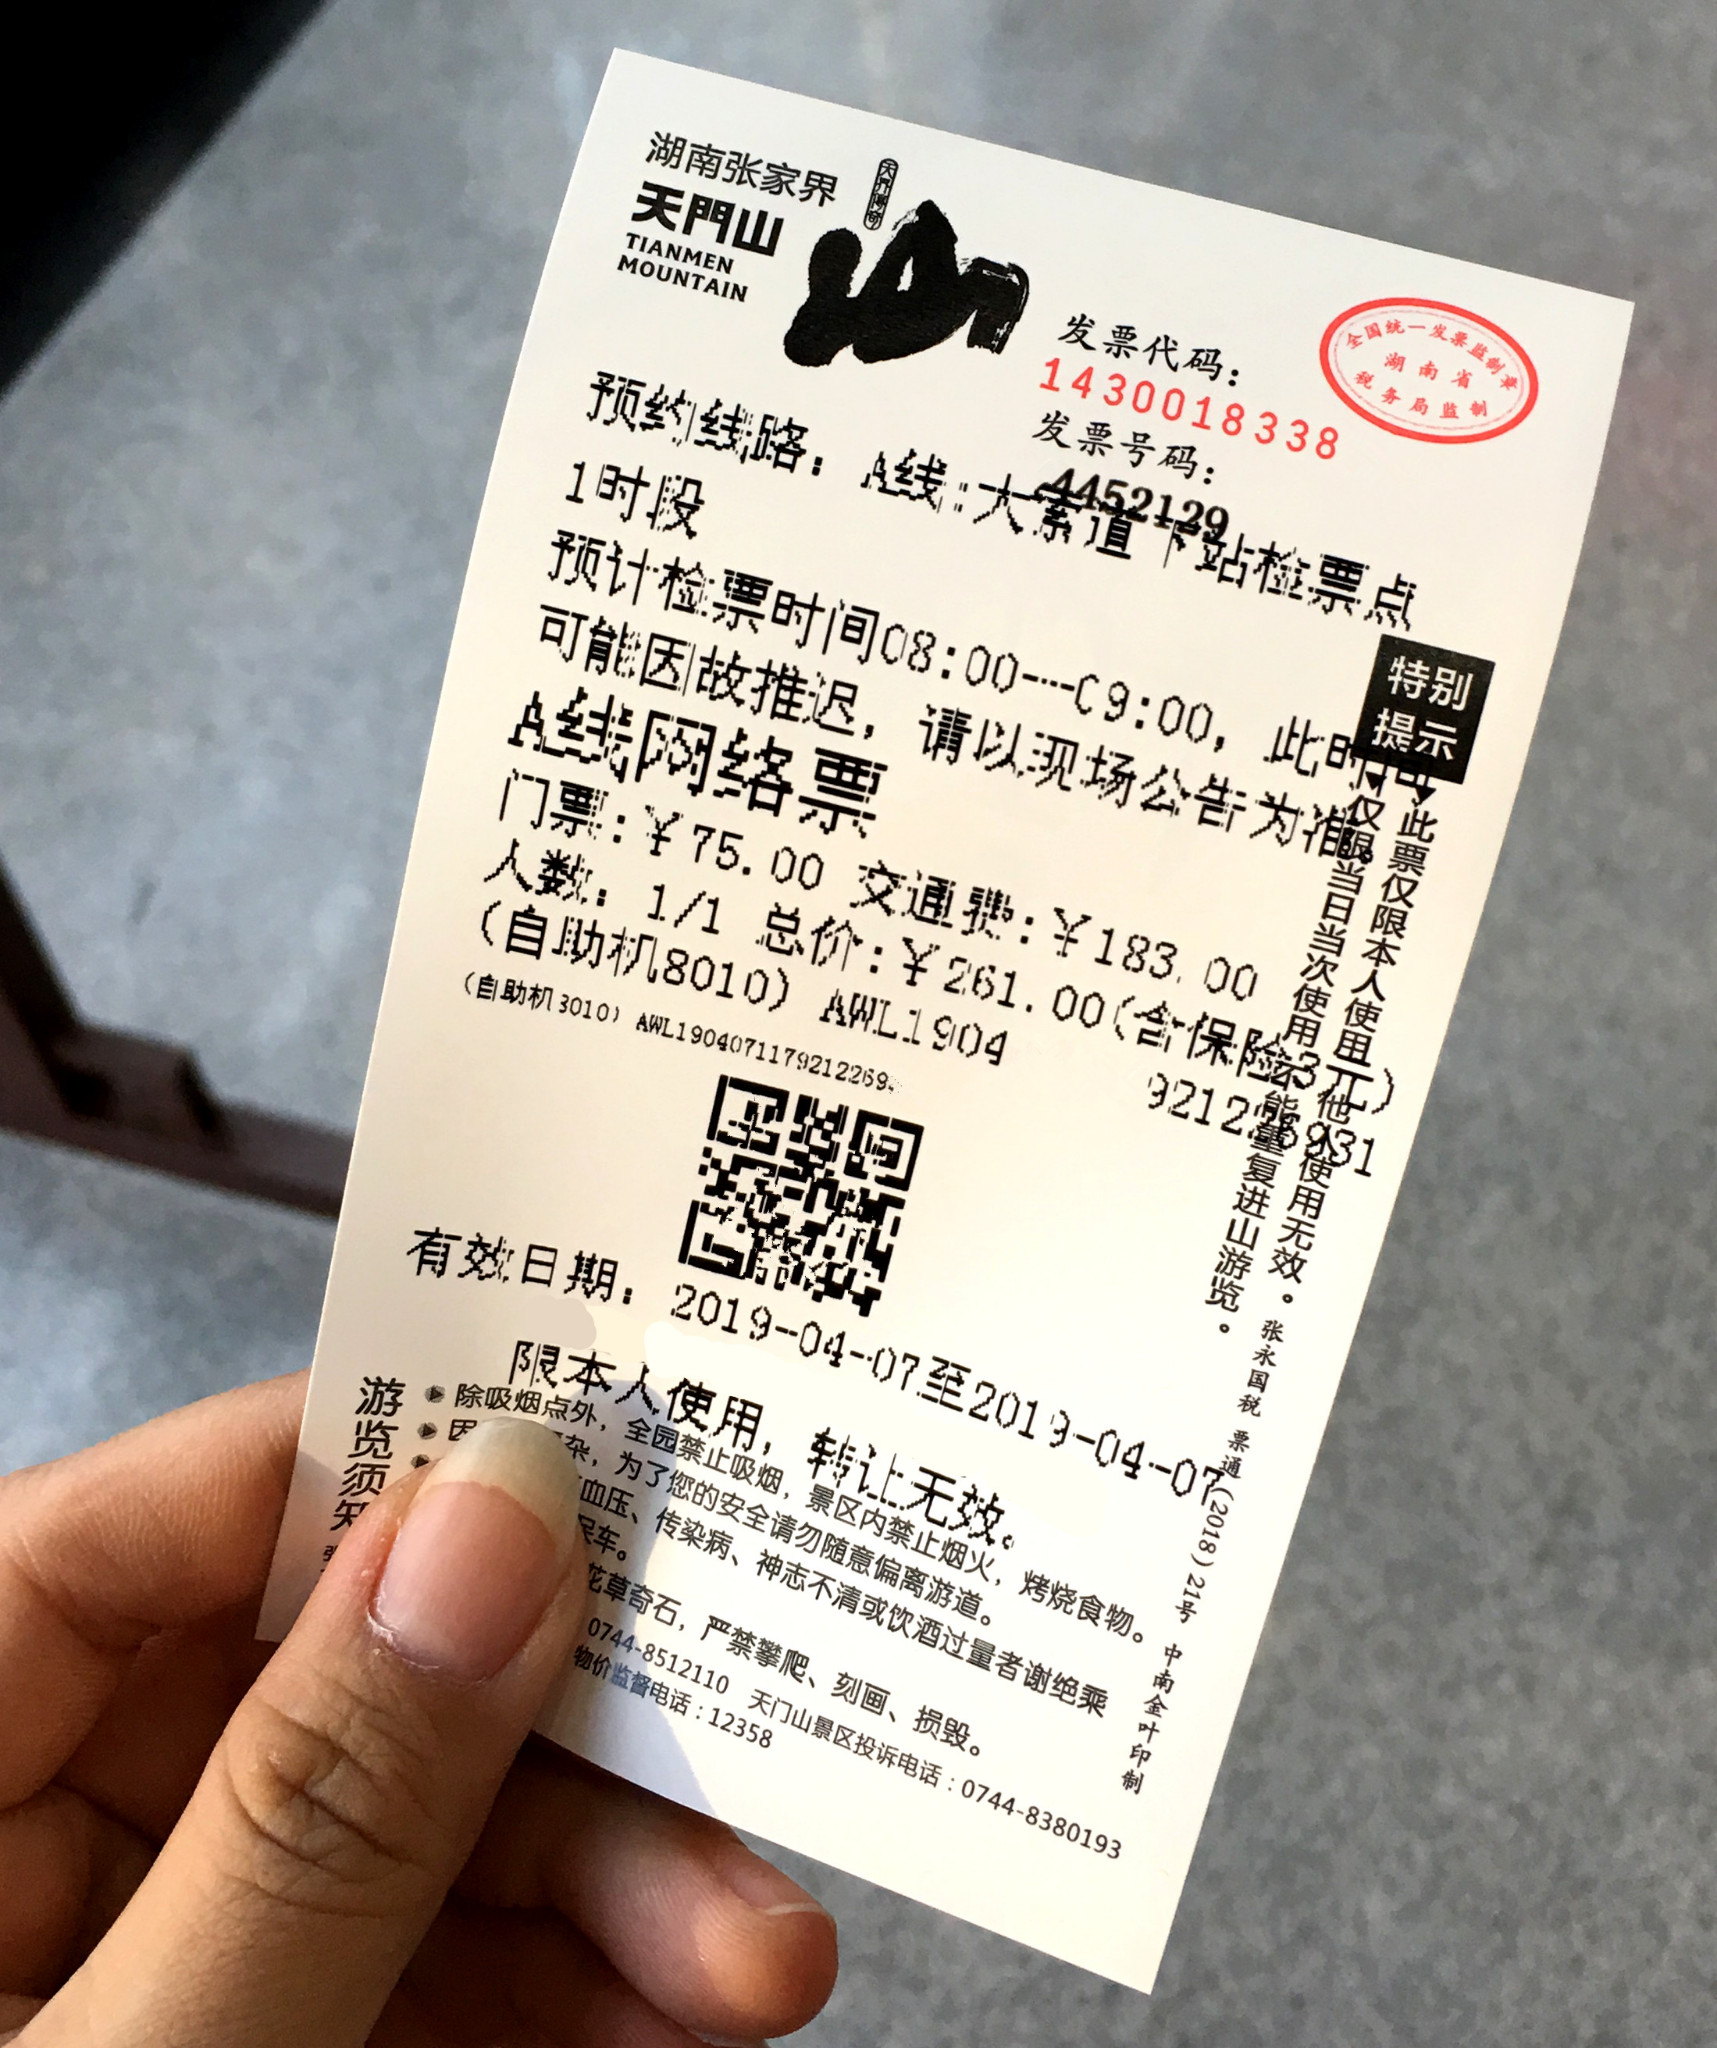 zhangjiajie tianmen mountain tickets